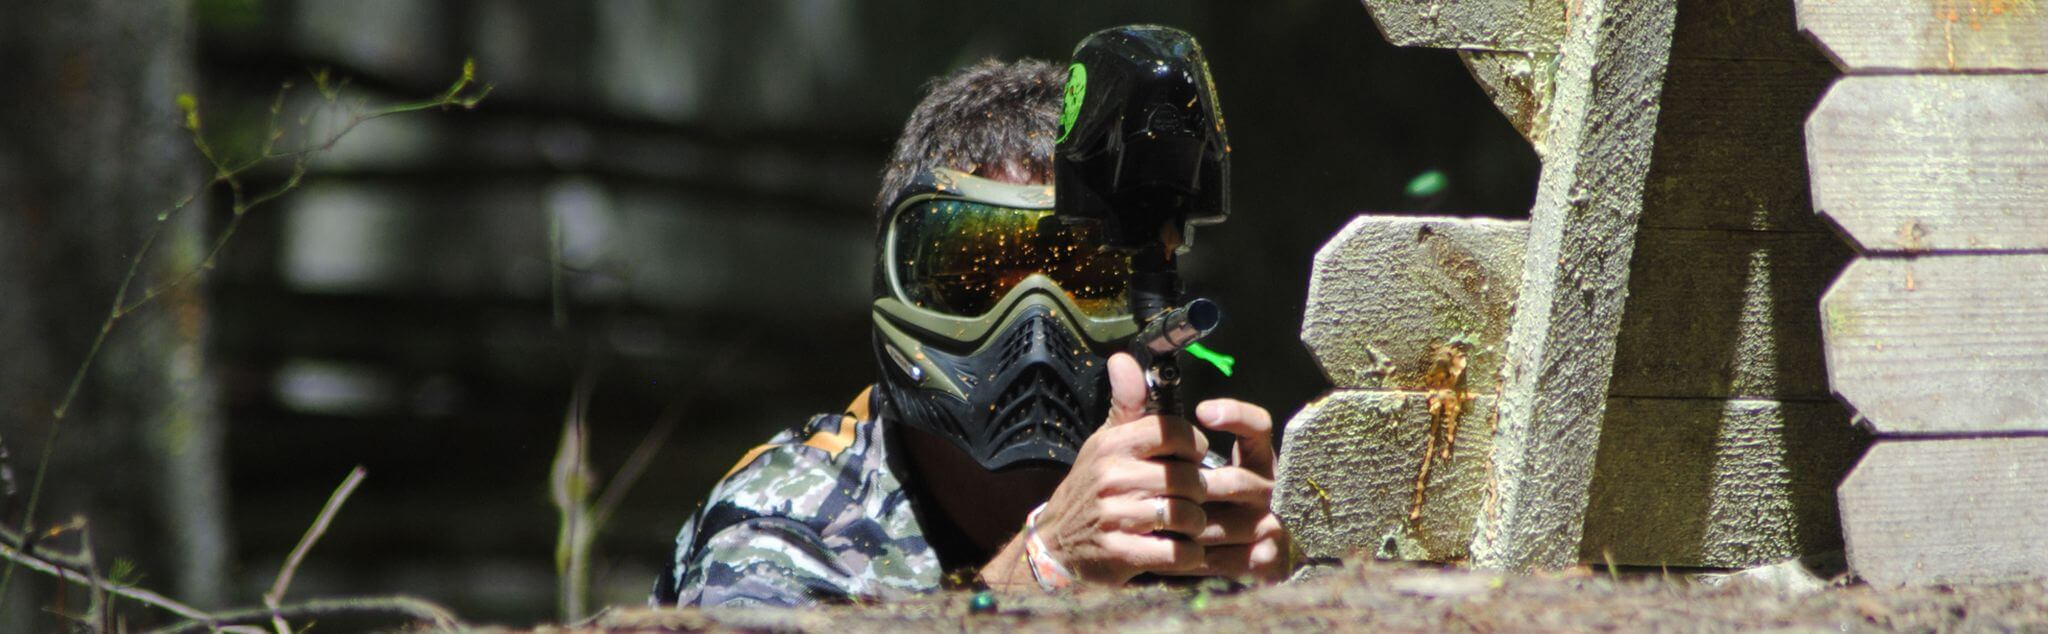 Paintball en Churriana De La Vega